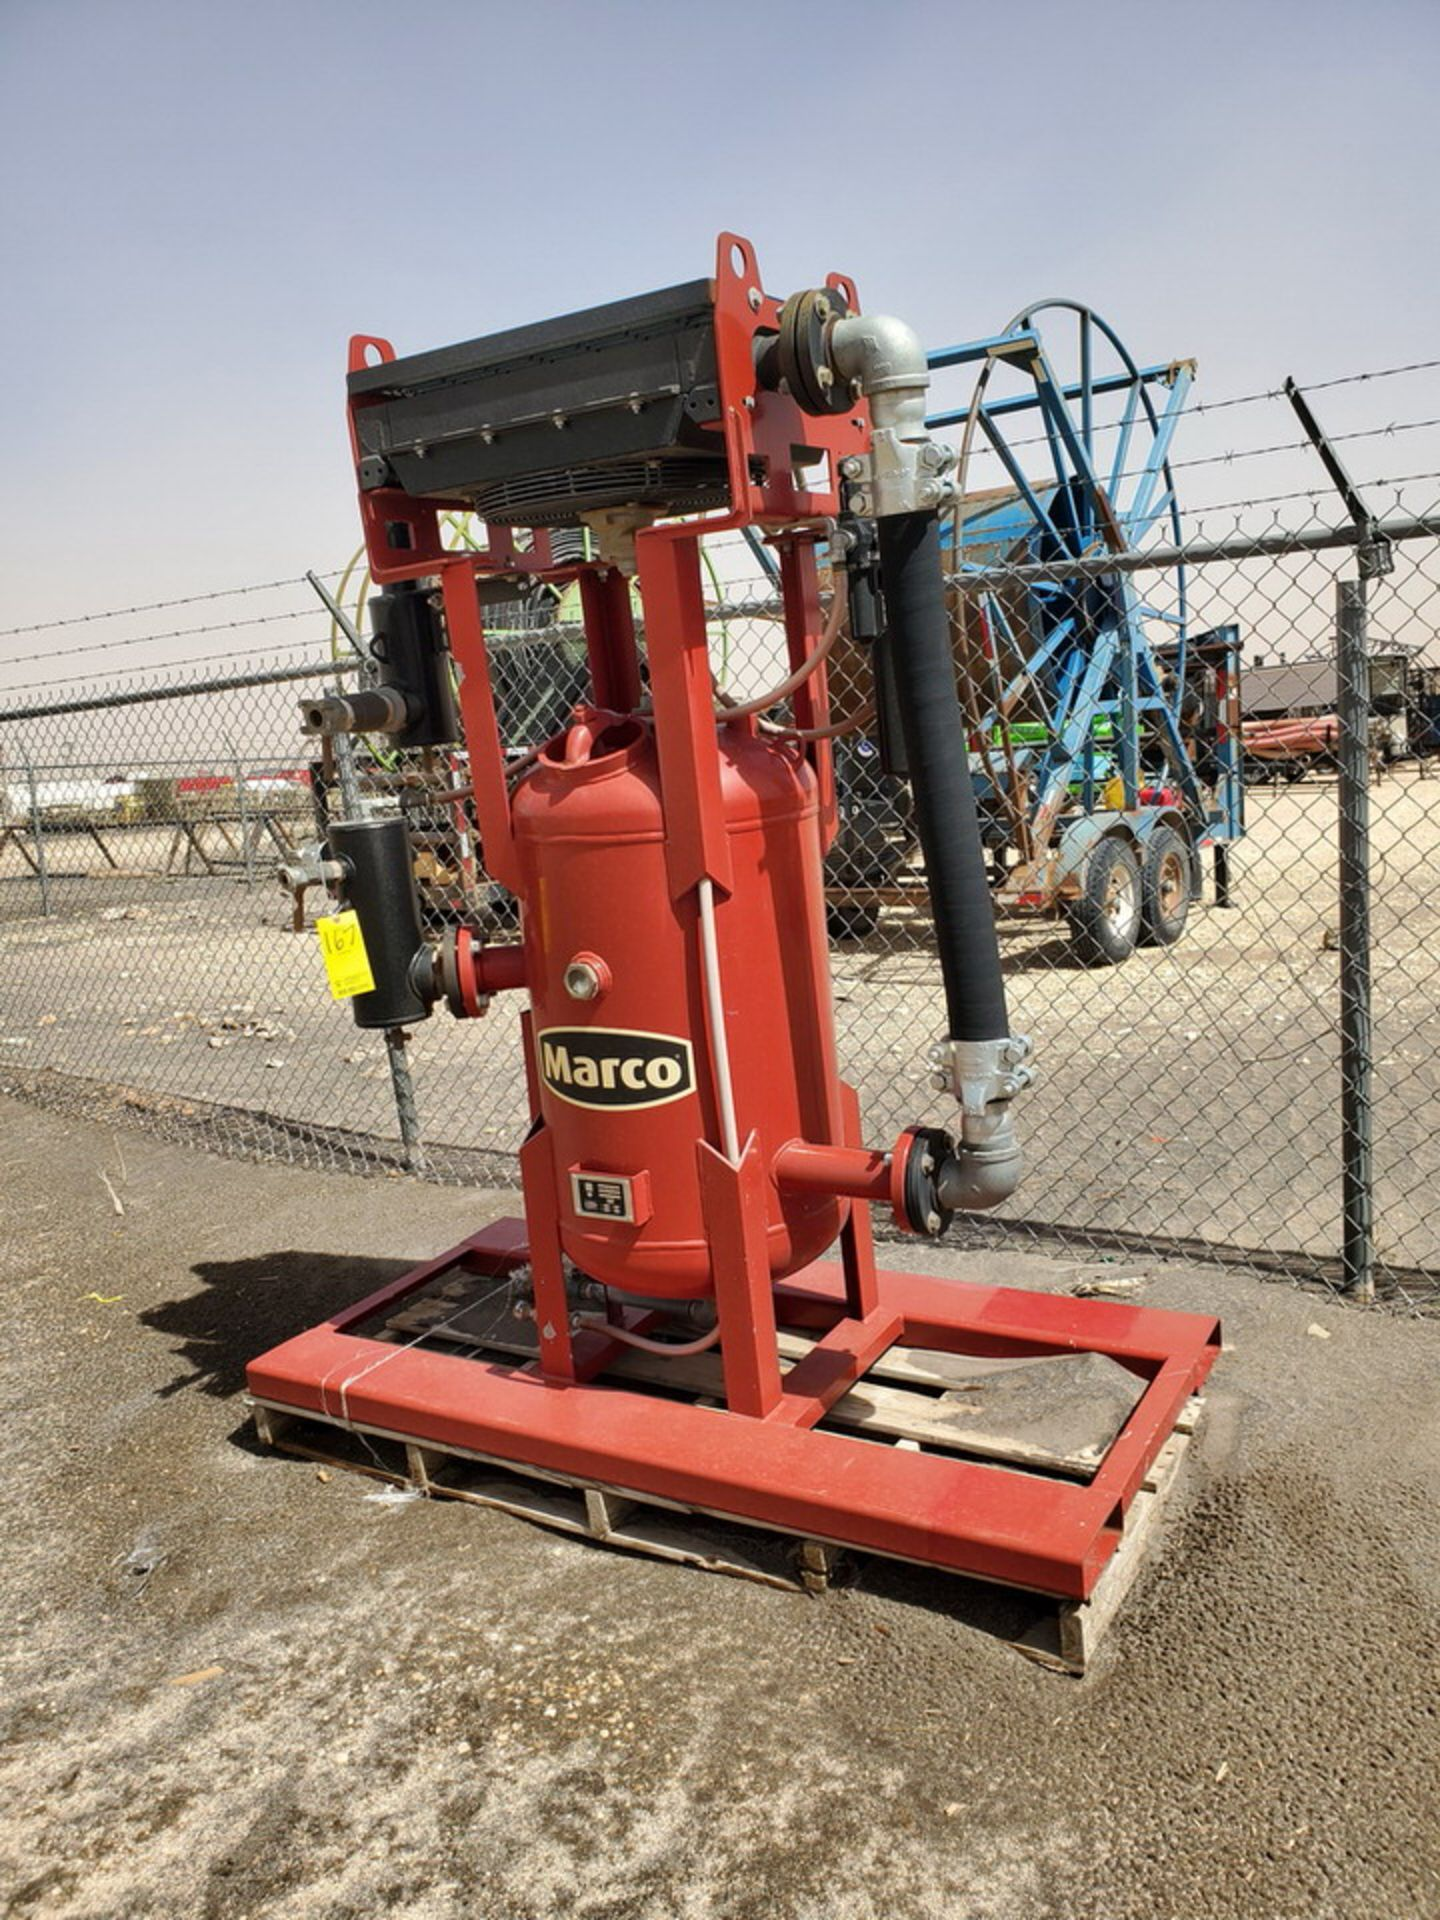 """2017 Marco Air Dryer 150psi@250F, -20@150psi, Vessel Dims: 30"""" Seam To Seam; Overall Dims: 72"""" x 35"""""""